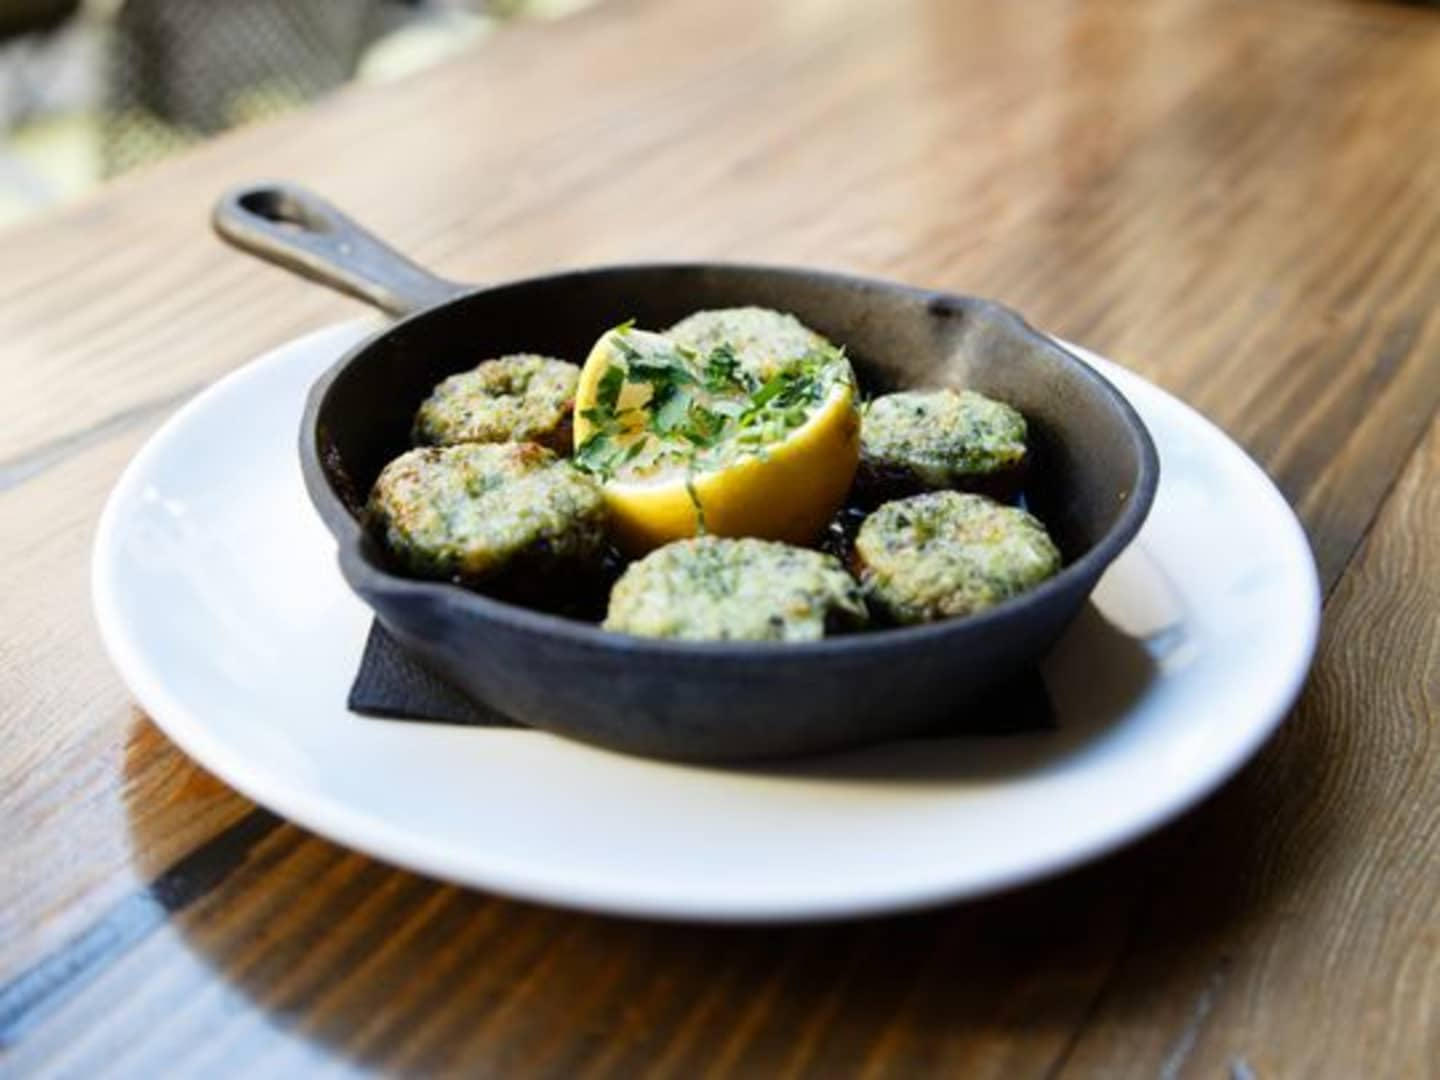 Roasted Mushrooms Escargot Style